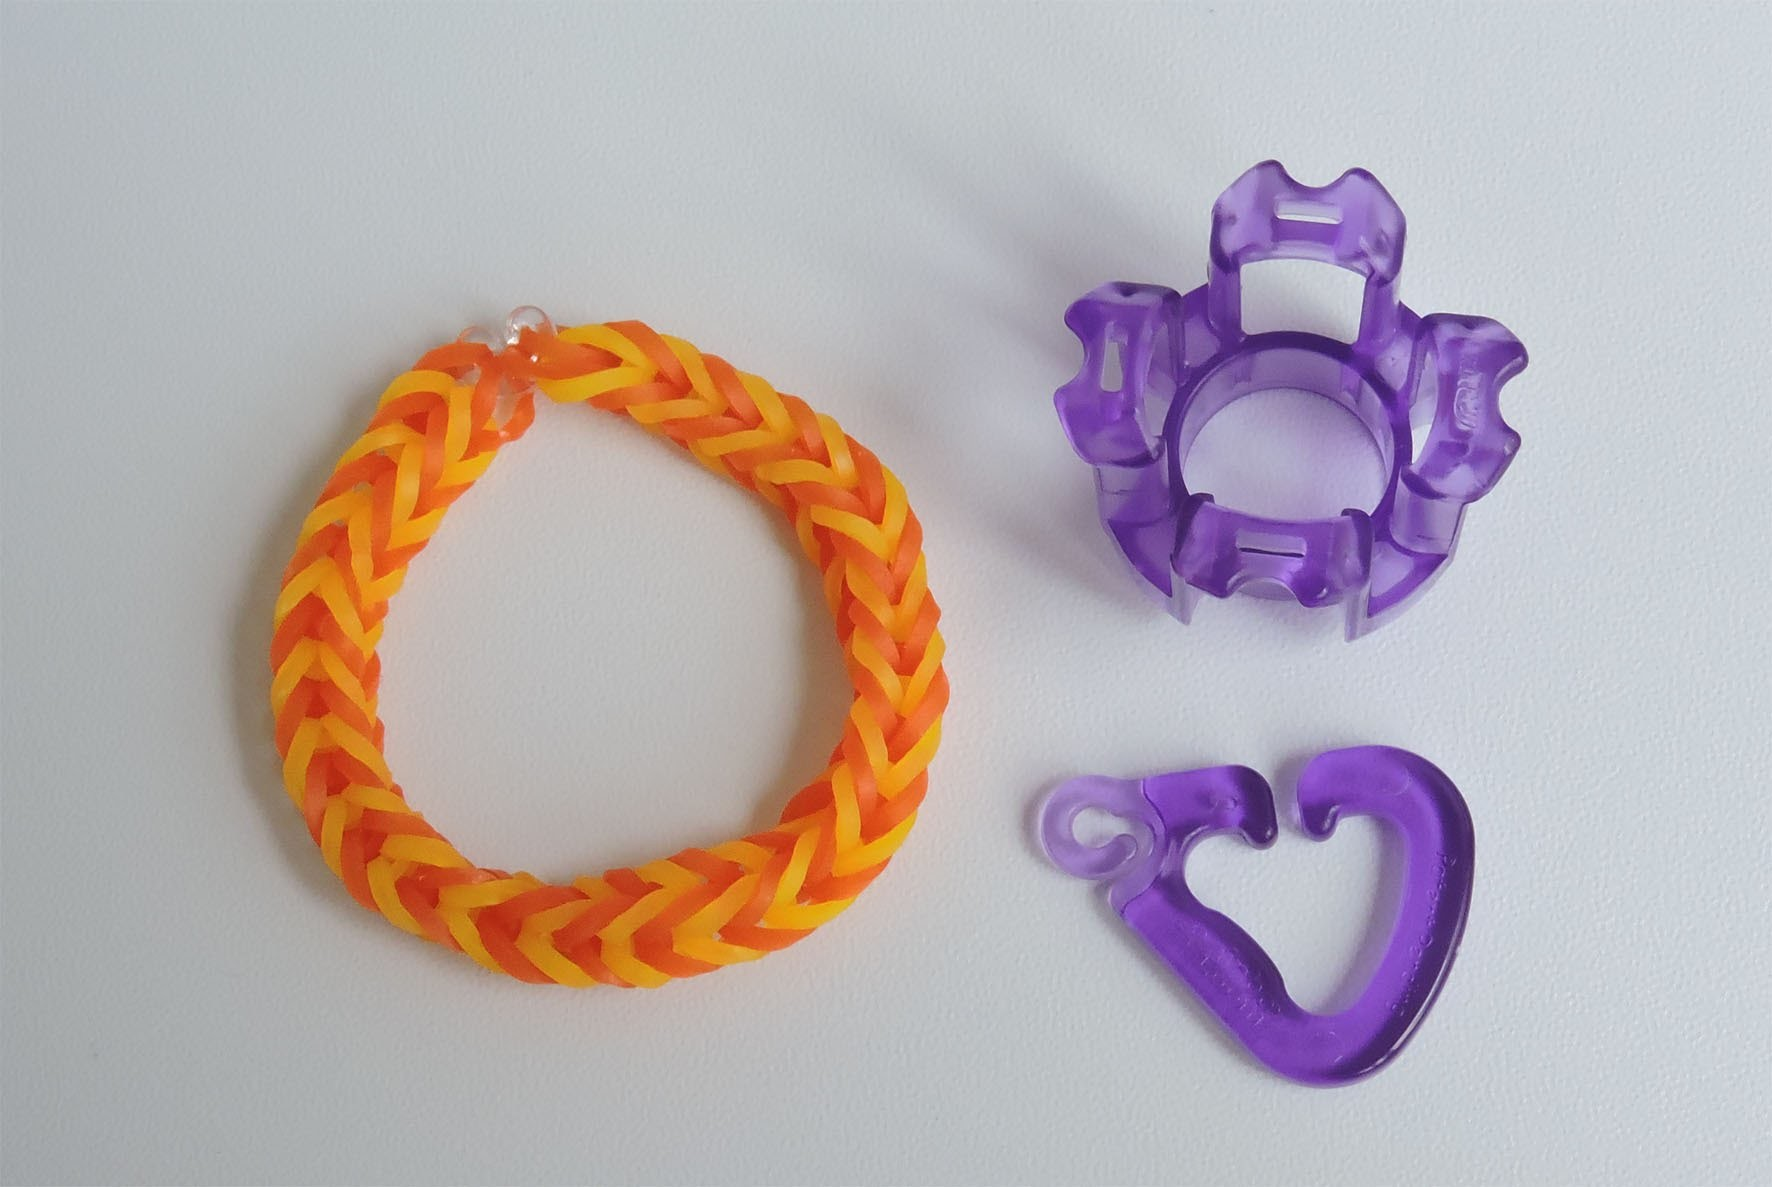 Fingerloom einfaches Armband,Crazy Loom,Rainbow Loom,Zauber Loom,Deutsch